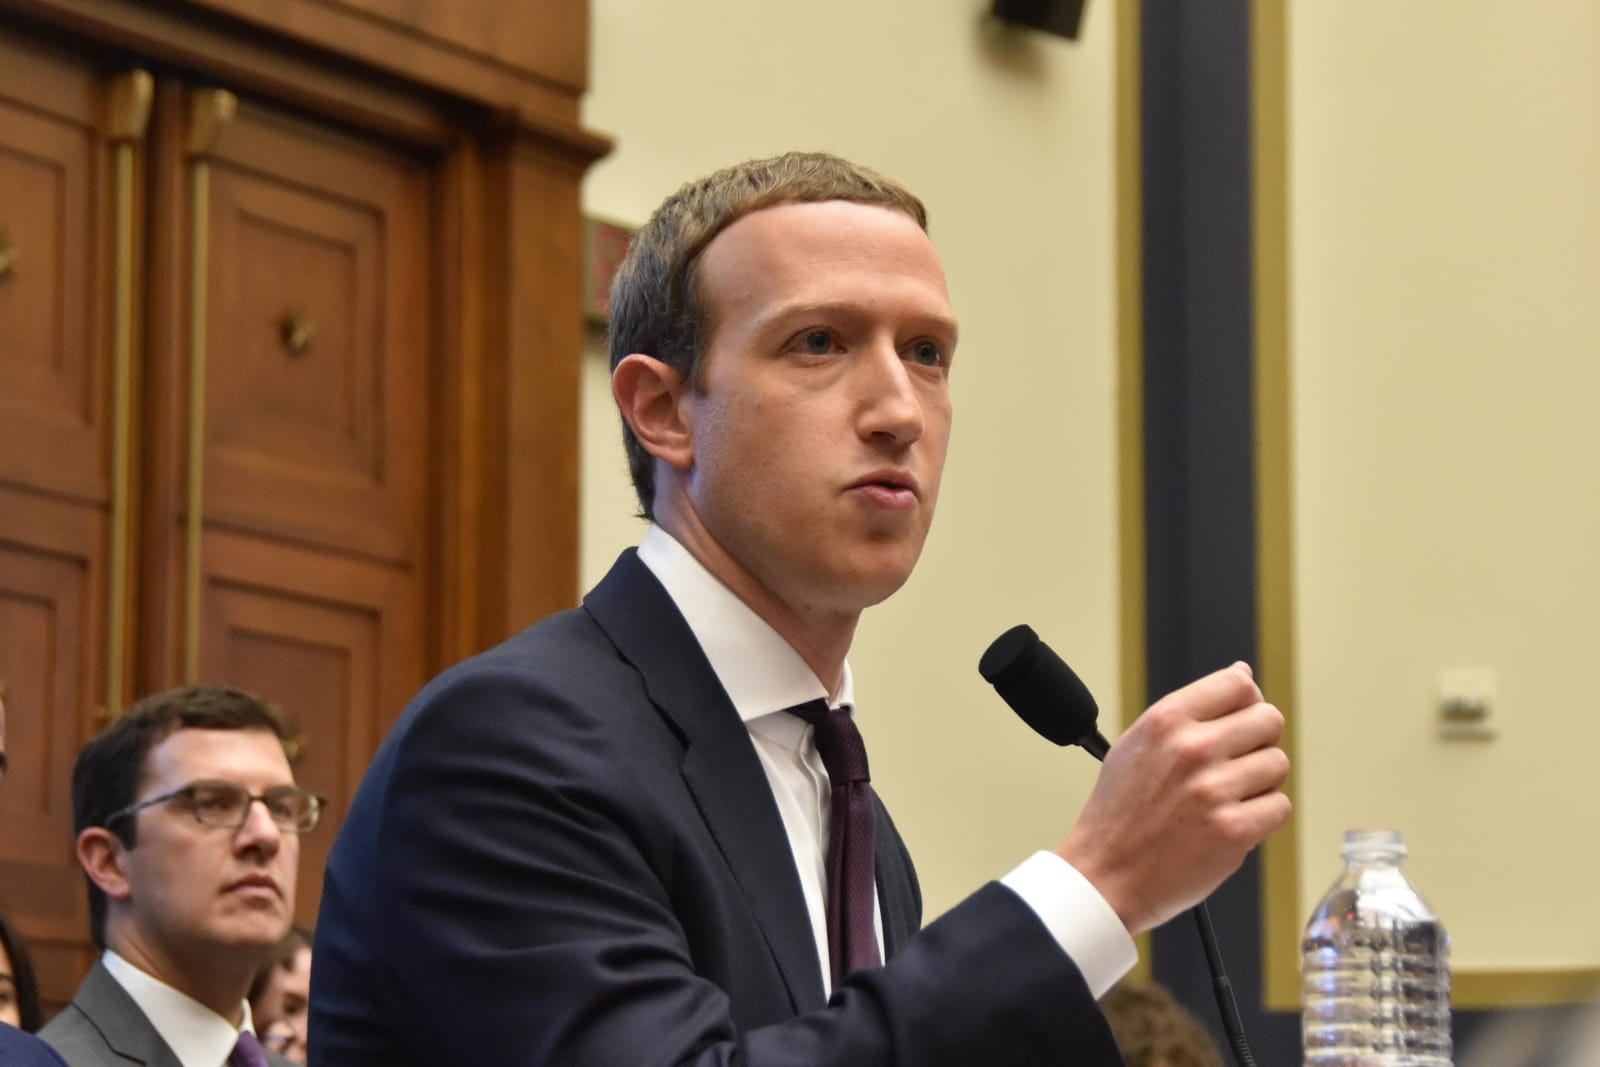 NBC News: Zuckerberg had an undisclosed dinner with the president